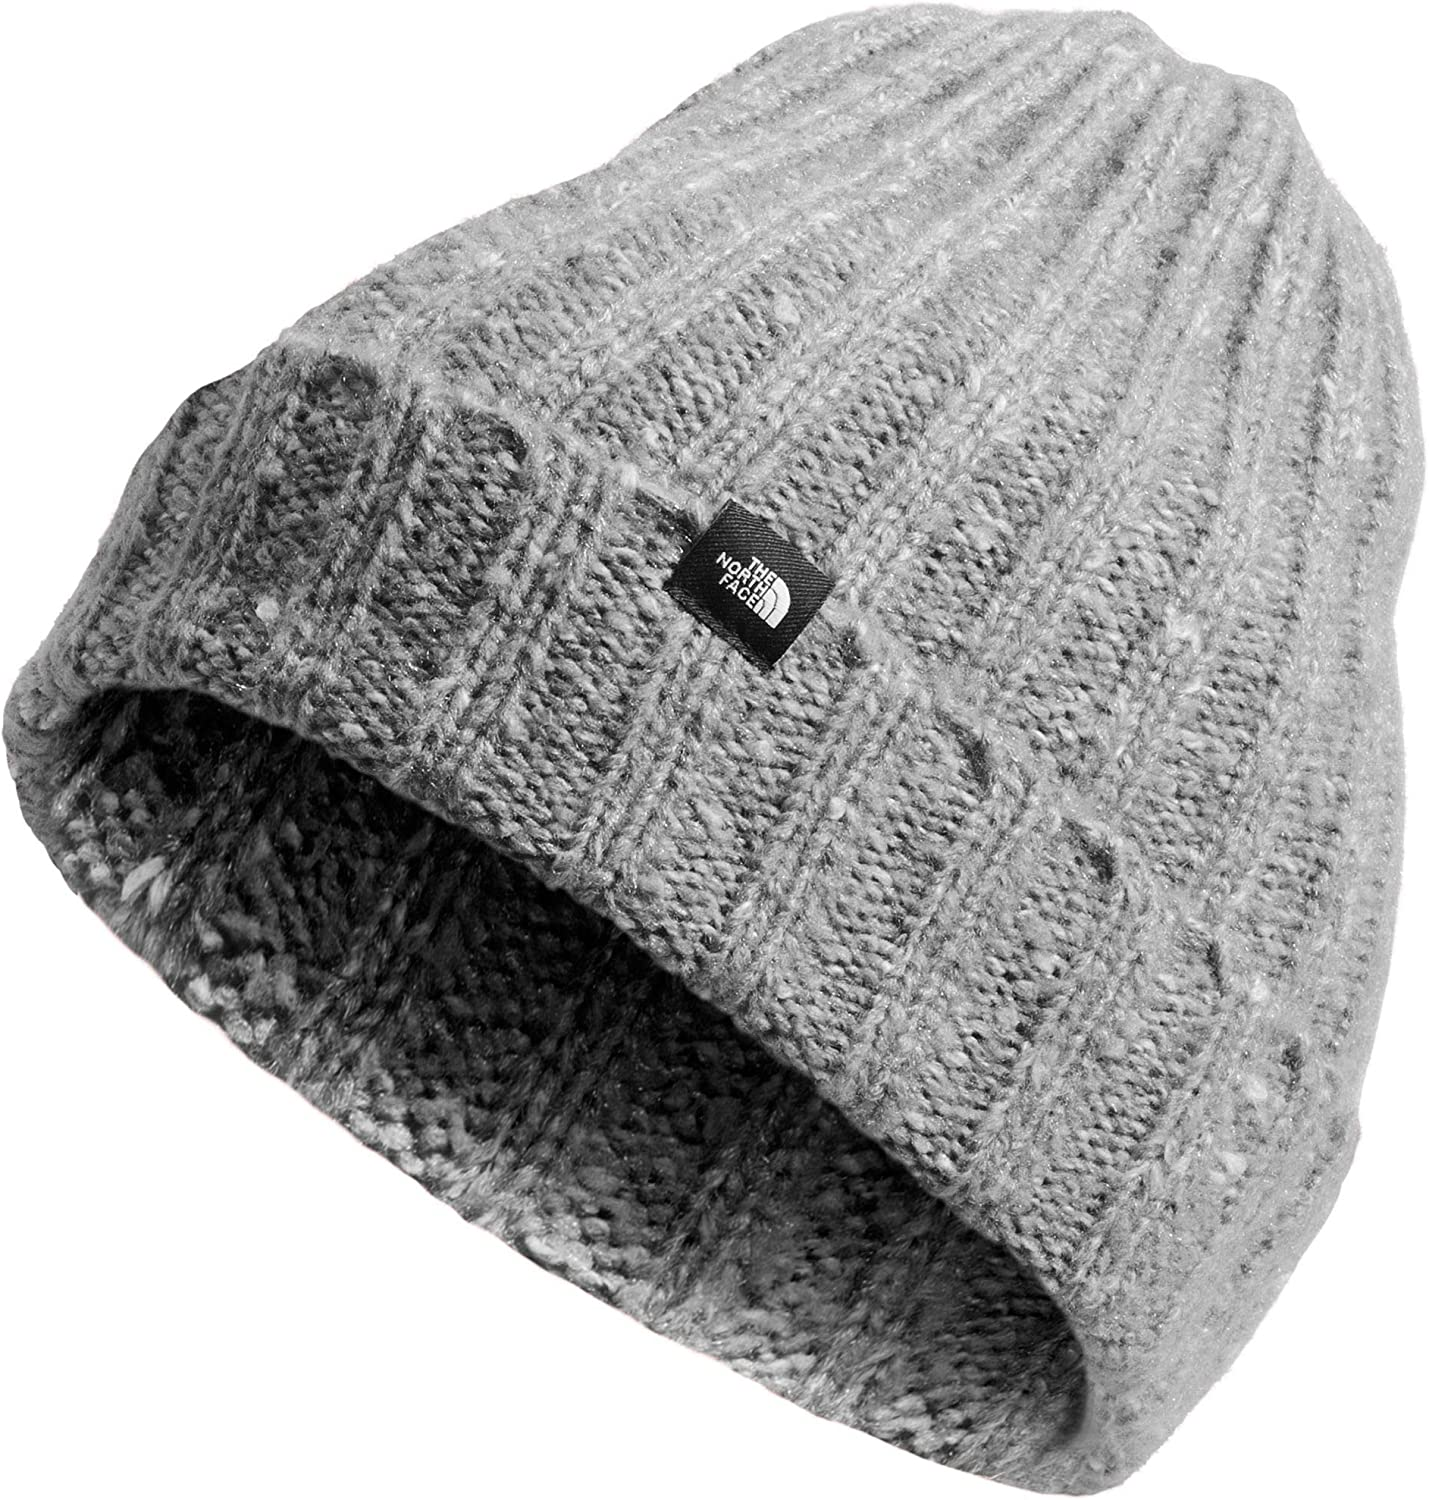 The half North Face Beanie Chunky Rib Quality inspection